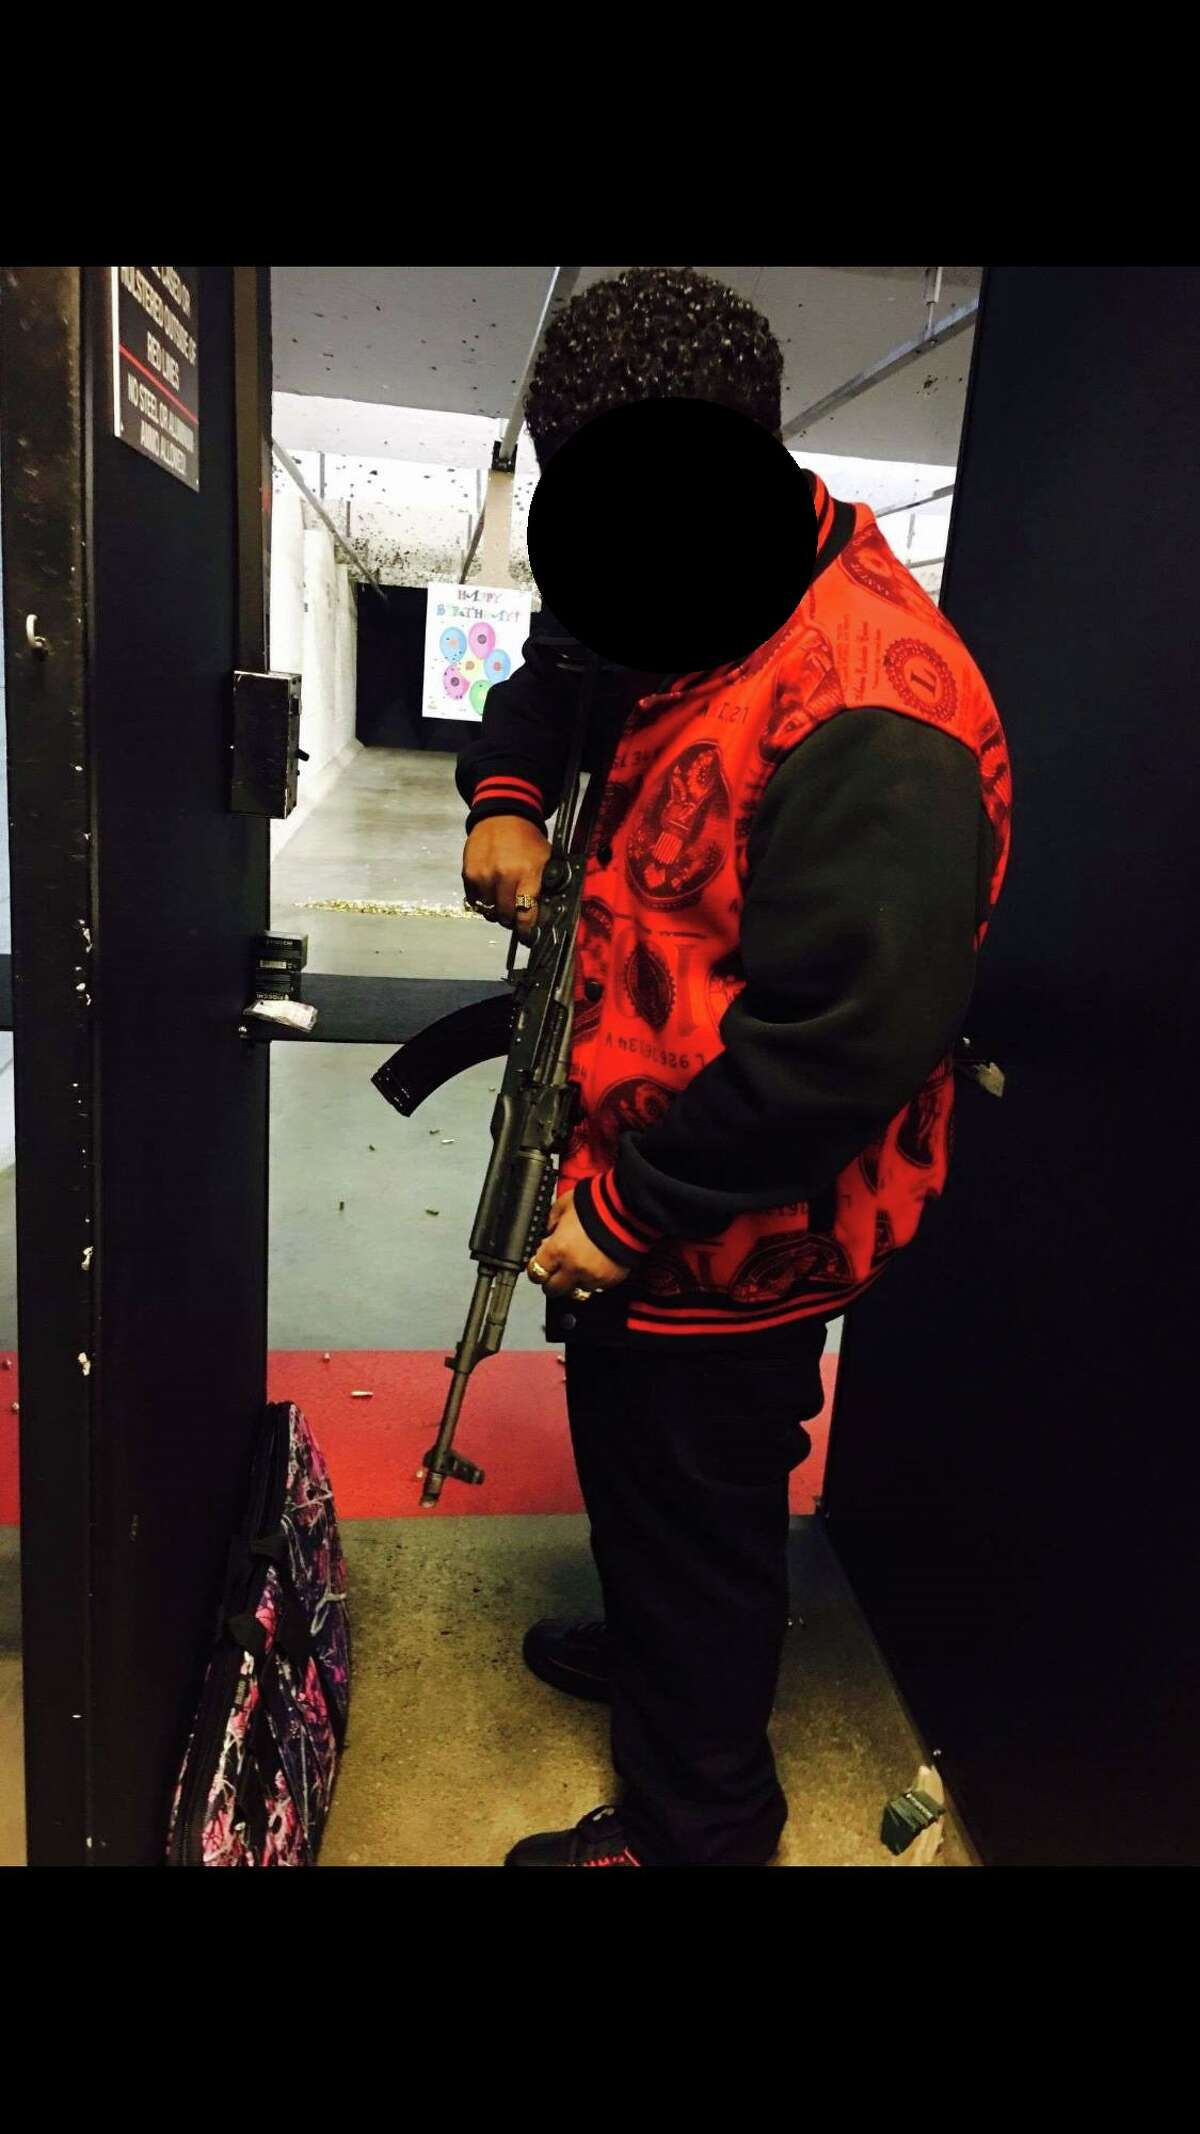 A pair of 24-year-old felons with multiple convictions were arrested last week after photos of themselves holding assault rifles were posted to Facebook, according to Seattle police.